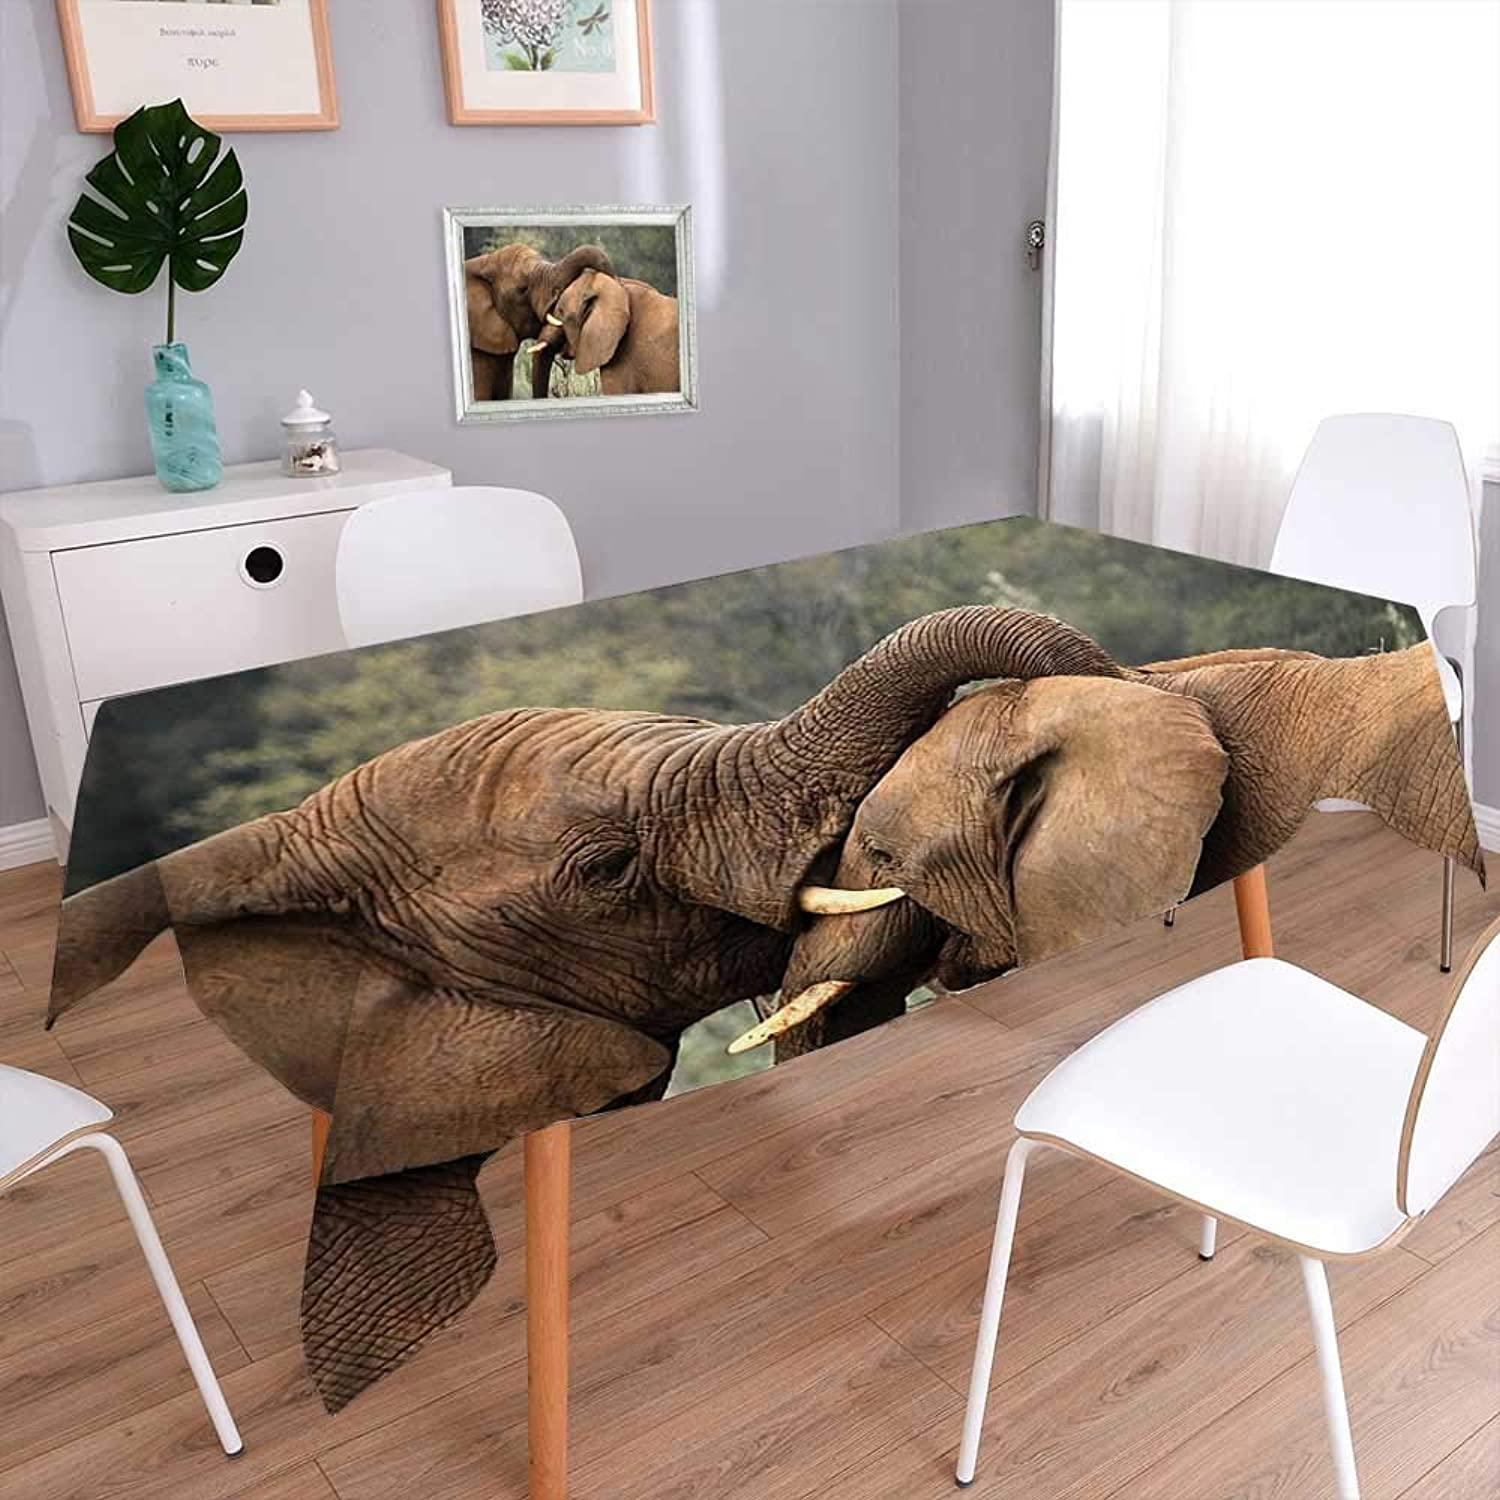 LQN 100% Polyester, EcoFriendly and Safe Two Wild Savanna Elephants Wrestling Cute Nature Icons South African Animals Game Photo Multi colors & Sizes 60 x140